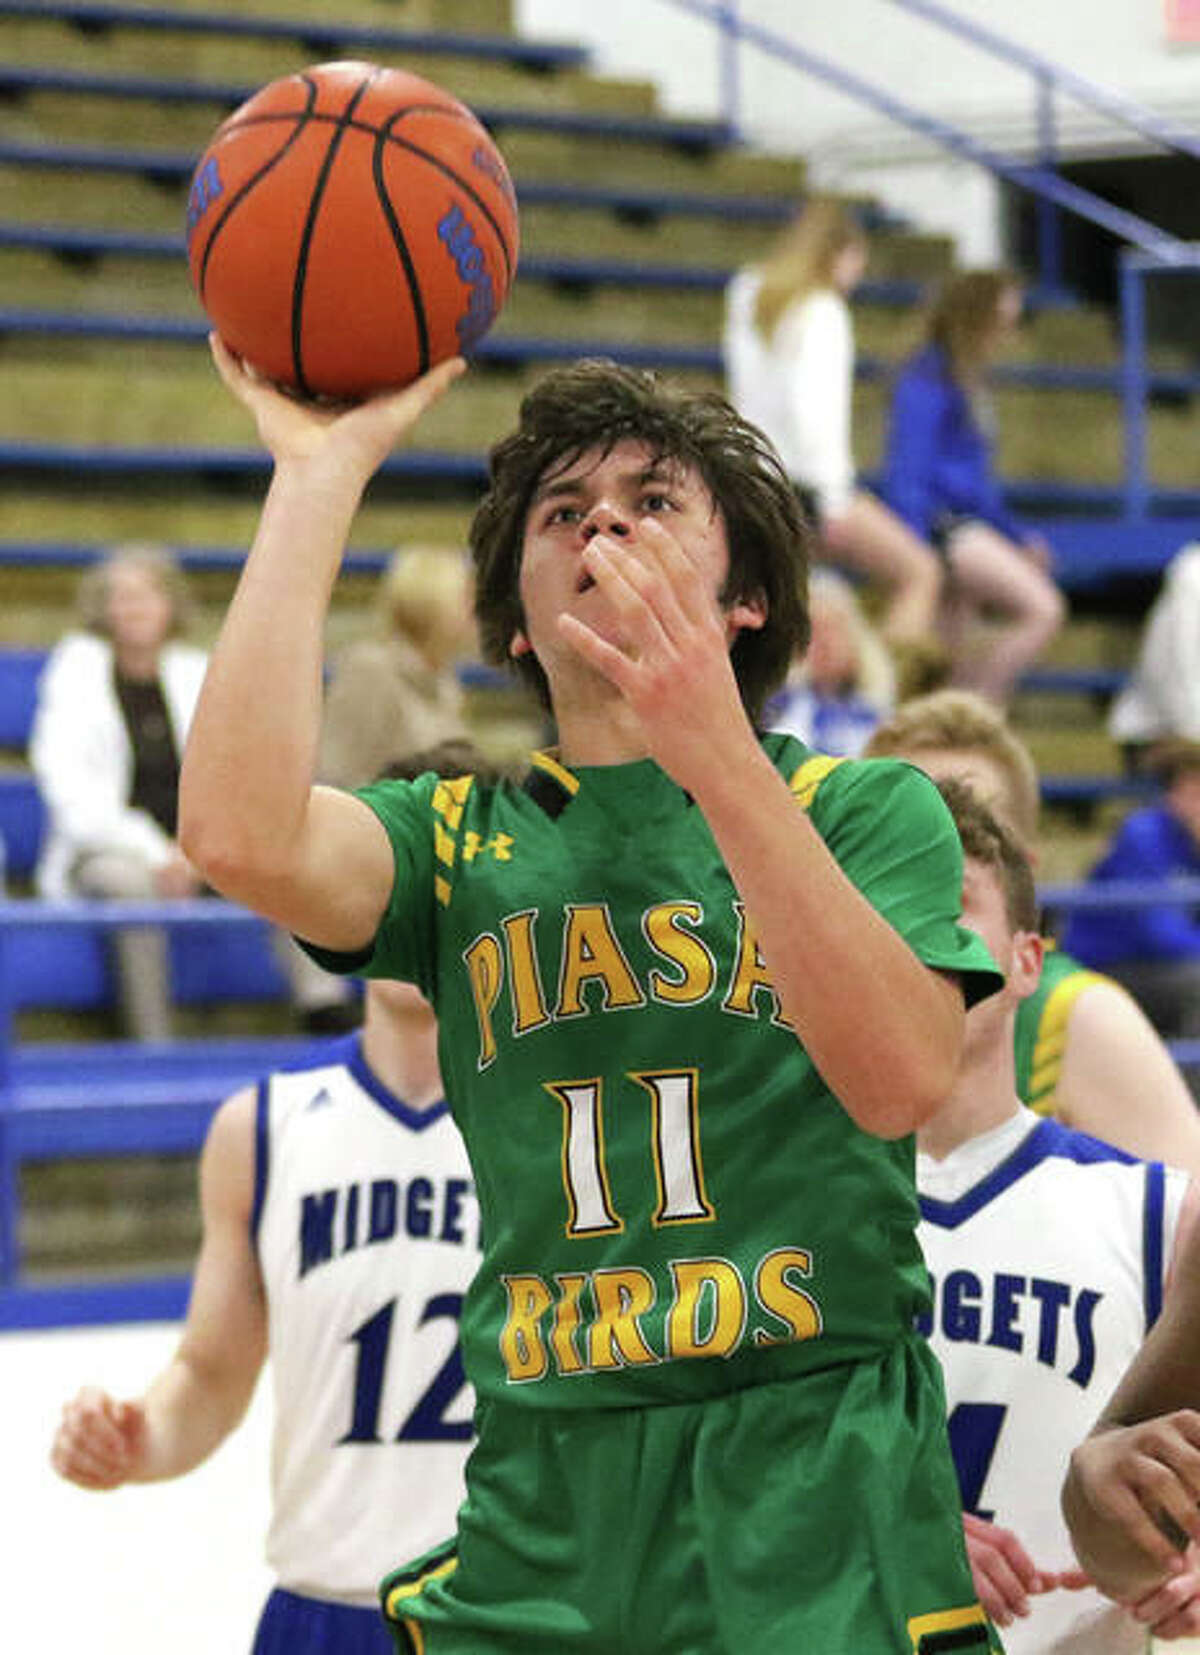 Southwestern's Gavin Day (11) puts a shot after getting to the basket in a Feb. 23 game at Freeburg. On Wednesday night, the Piasa Birds were home in Piasa and defeated Mount Olive.